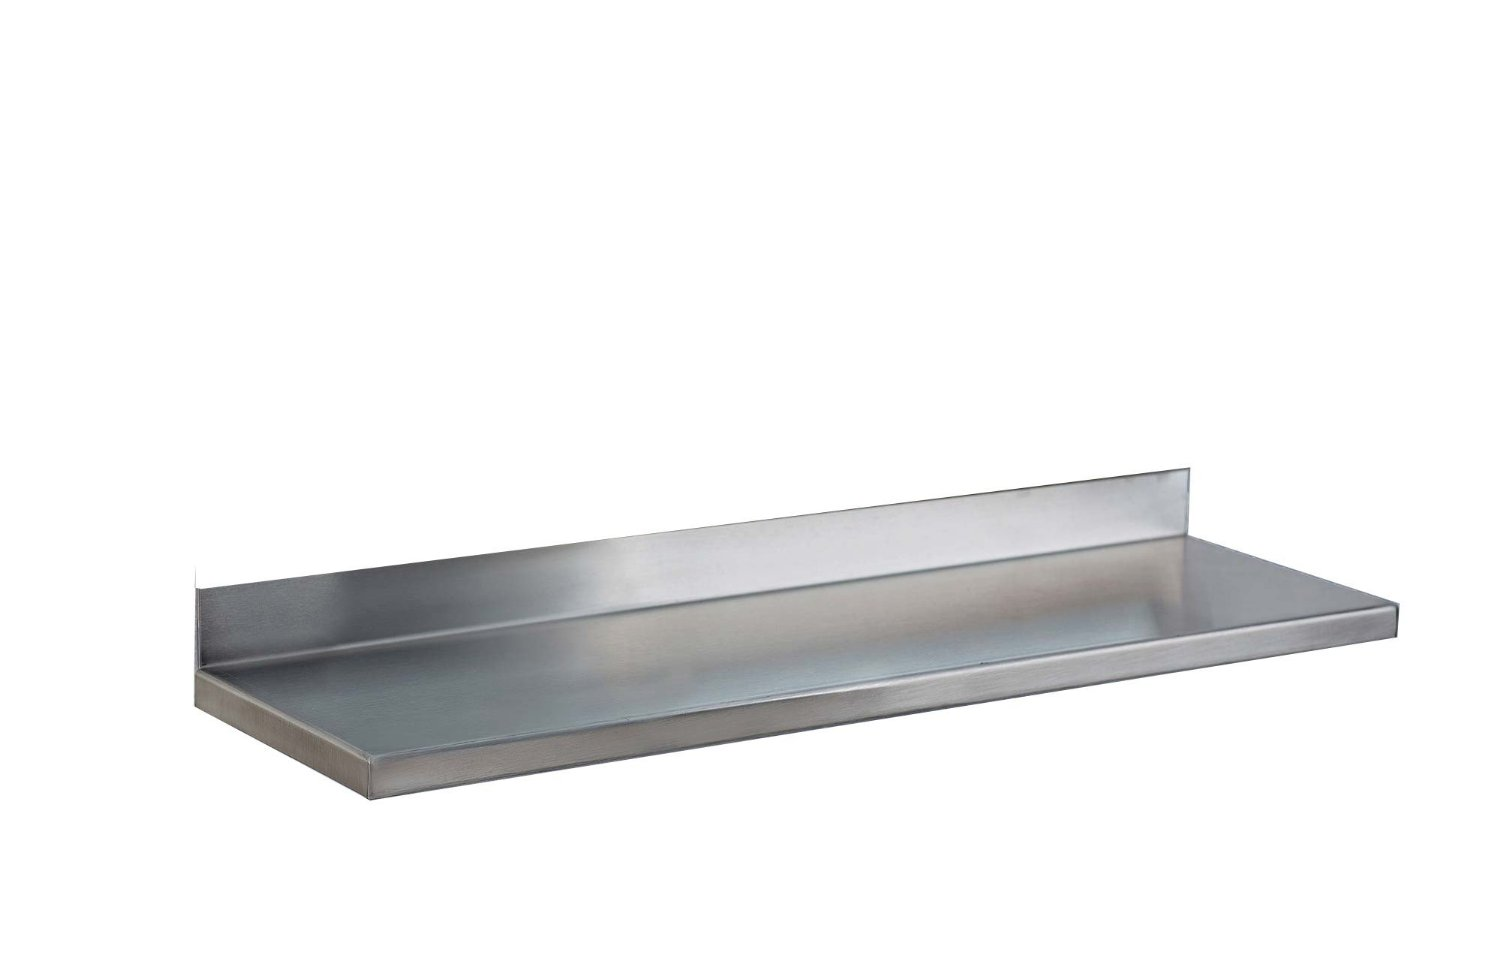 18-inch x 6-inch, Integral shelf, satin finish